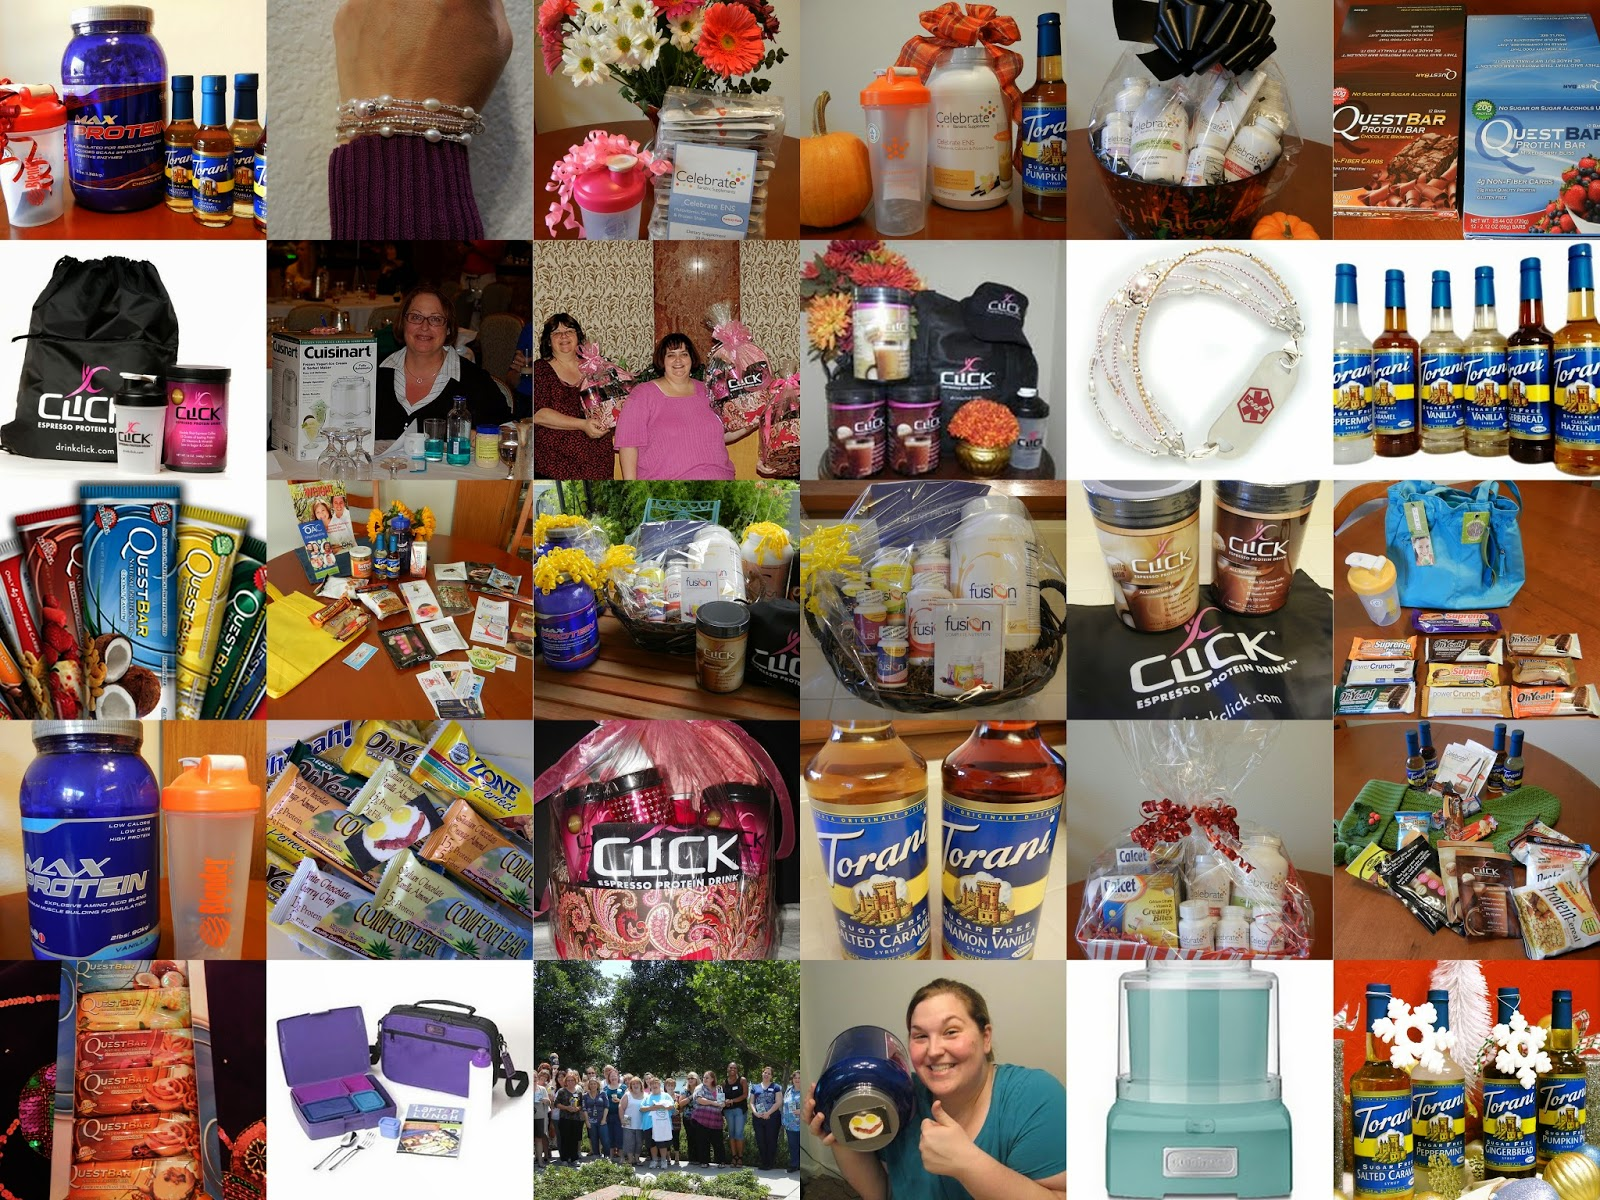 Eggface+Blog+Giveaway+Collage+1 Weight Loss Recipes Heads Up: Contests and Giveaways Galore!